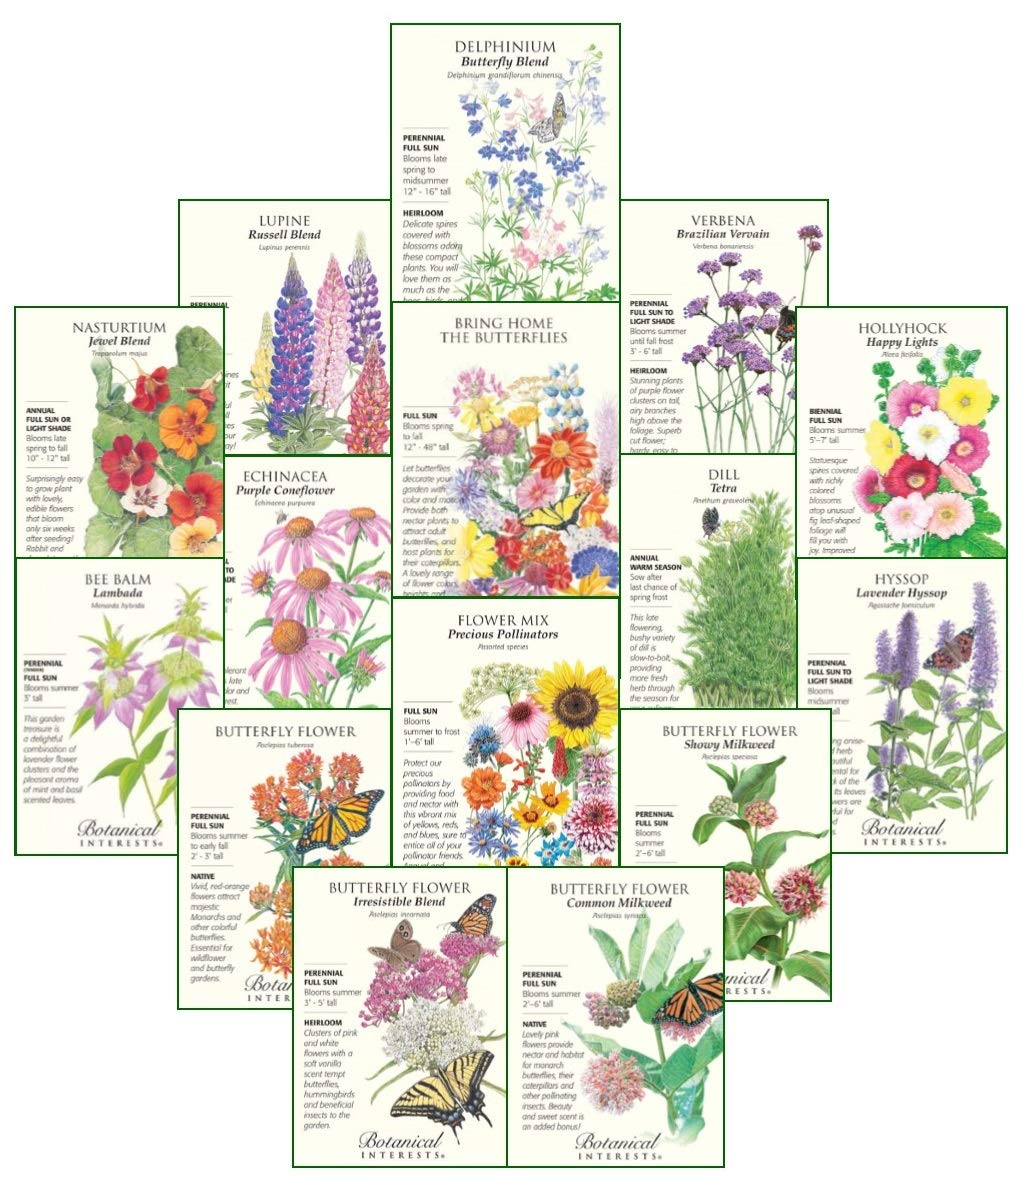 Botanical Interests''Butterfly Garden and Monarch Way Station'' Flower Seed Collection - 15 Packets with Gift Box. $1 Goes to Save Our Monarchs Foundation!